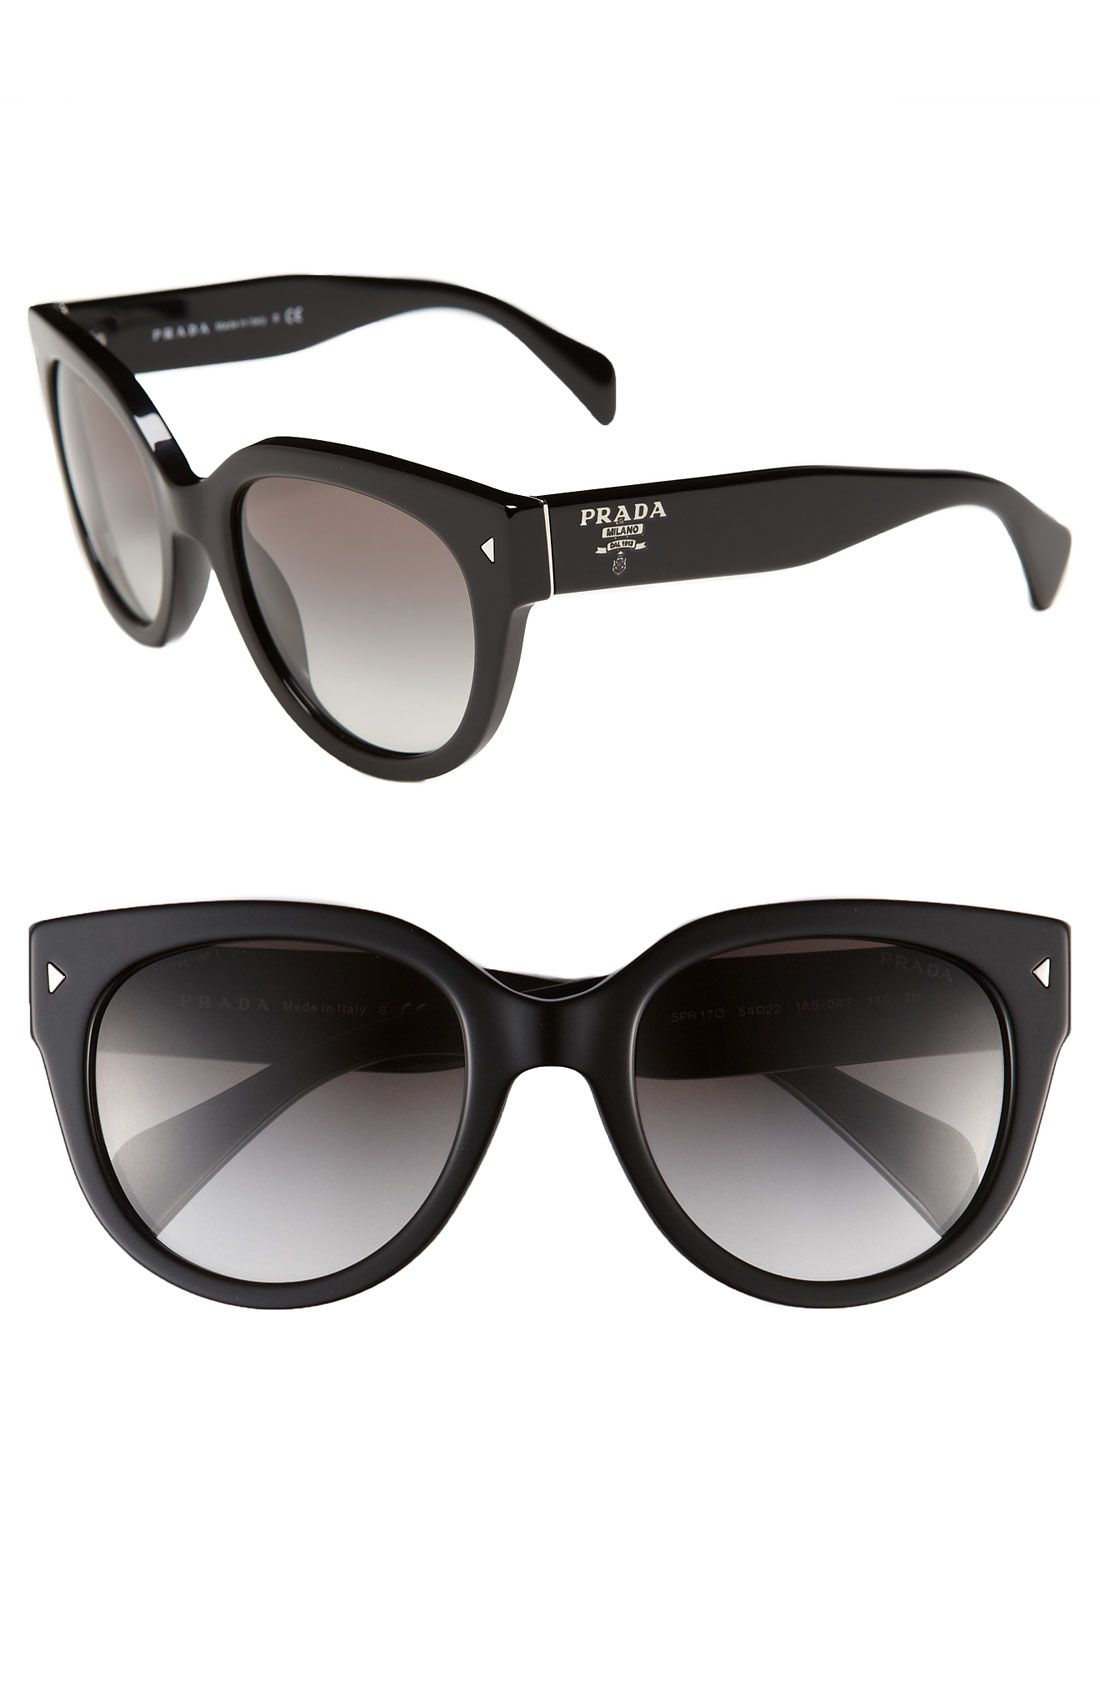 Cat-eye sunglasses Prada 7oMQeS